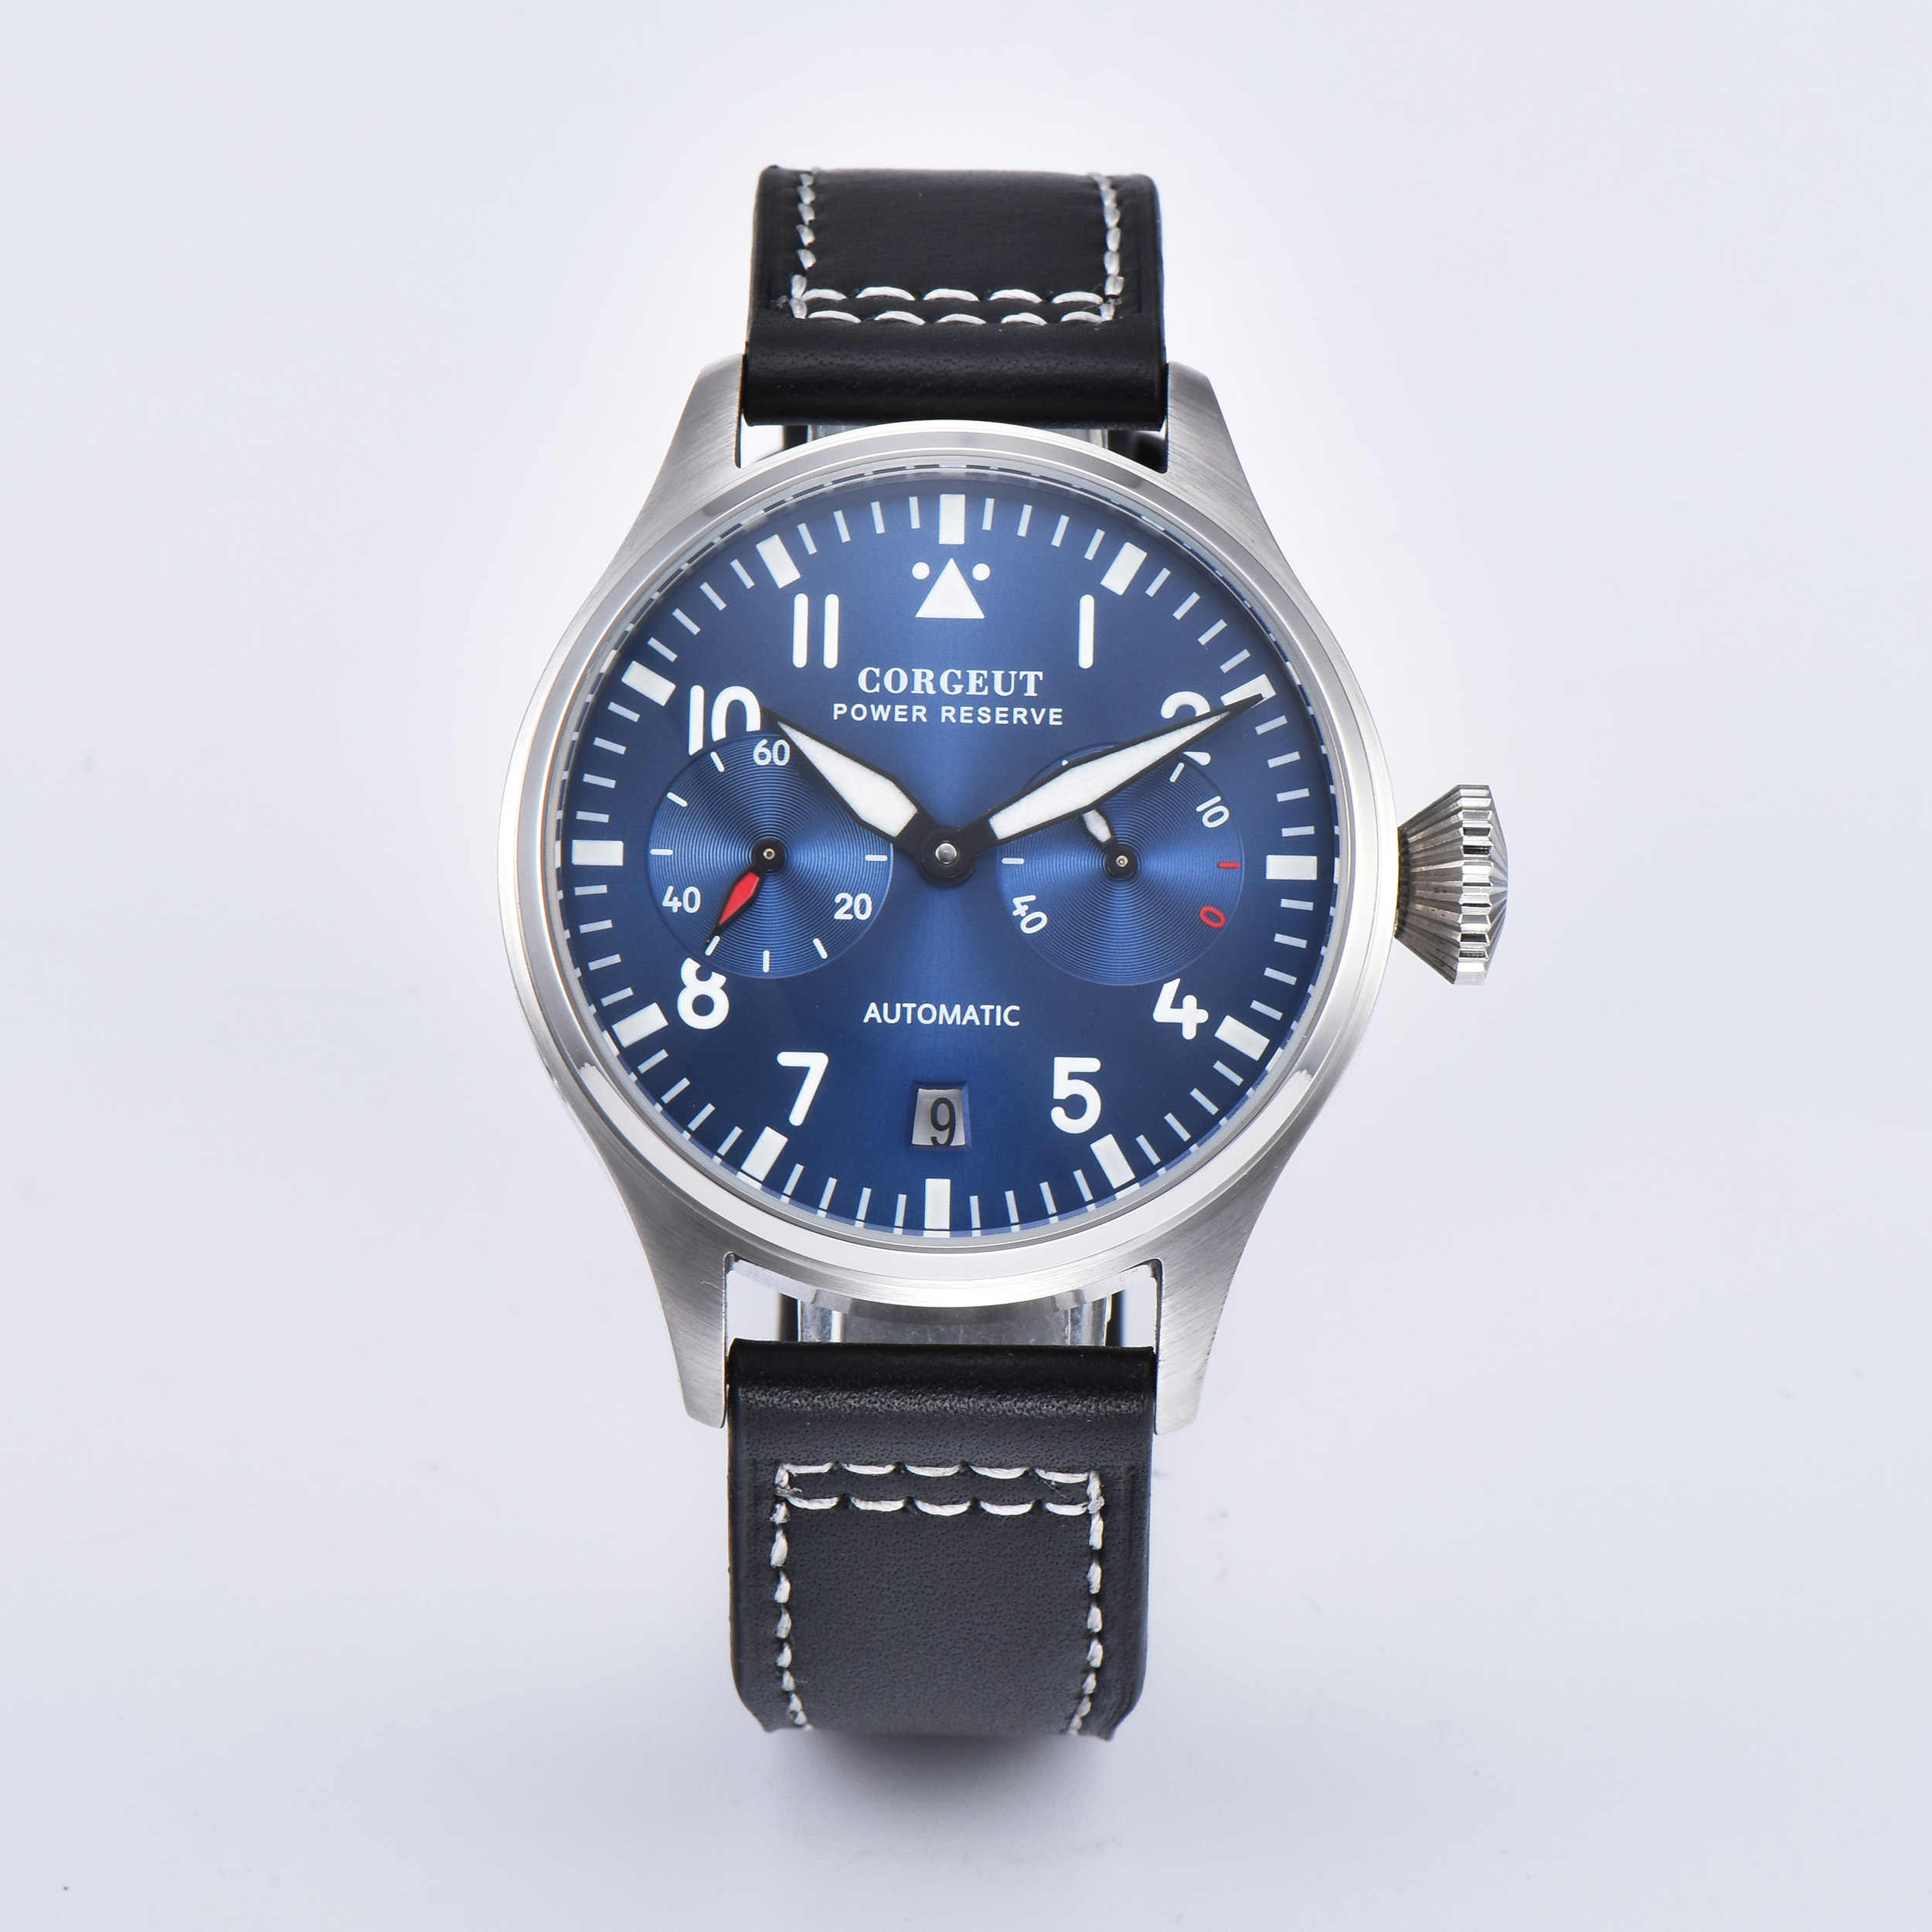 Corgeut 42mm Date Blue dial Power Reserve Window Leather Automaitc Men's Watch